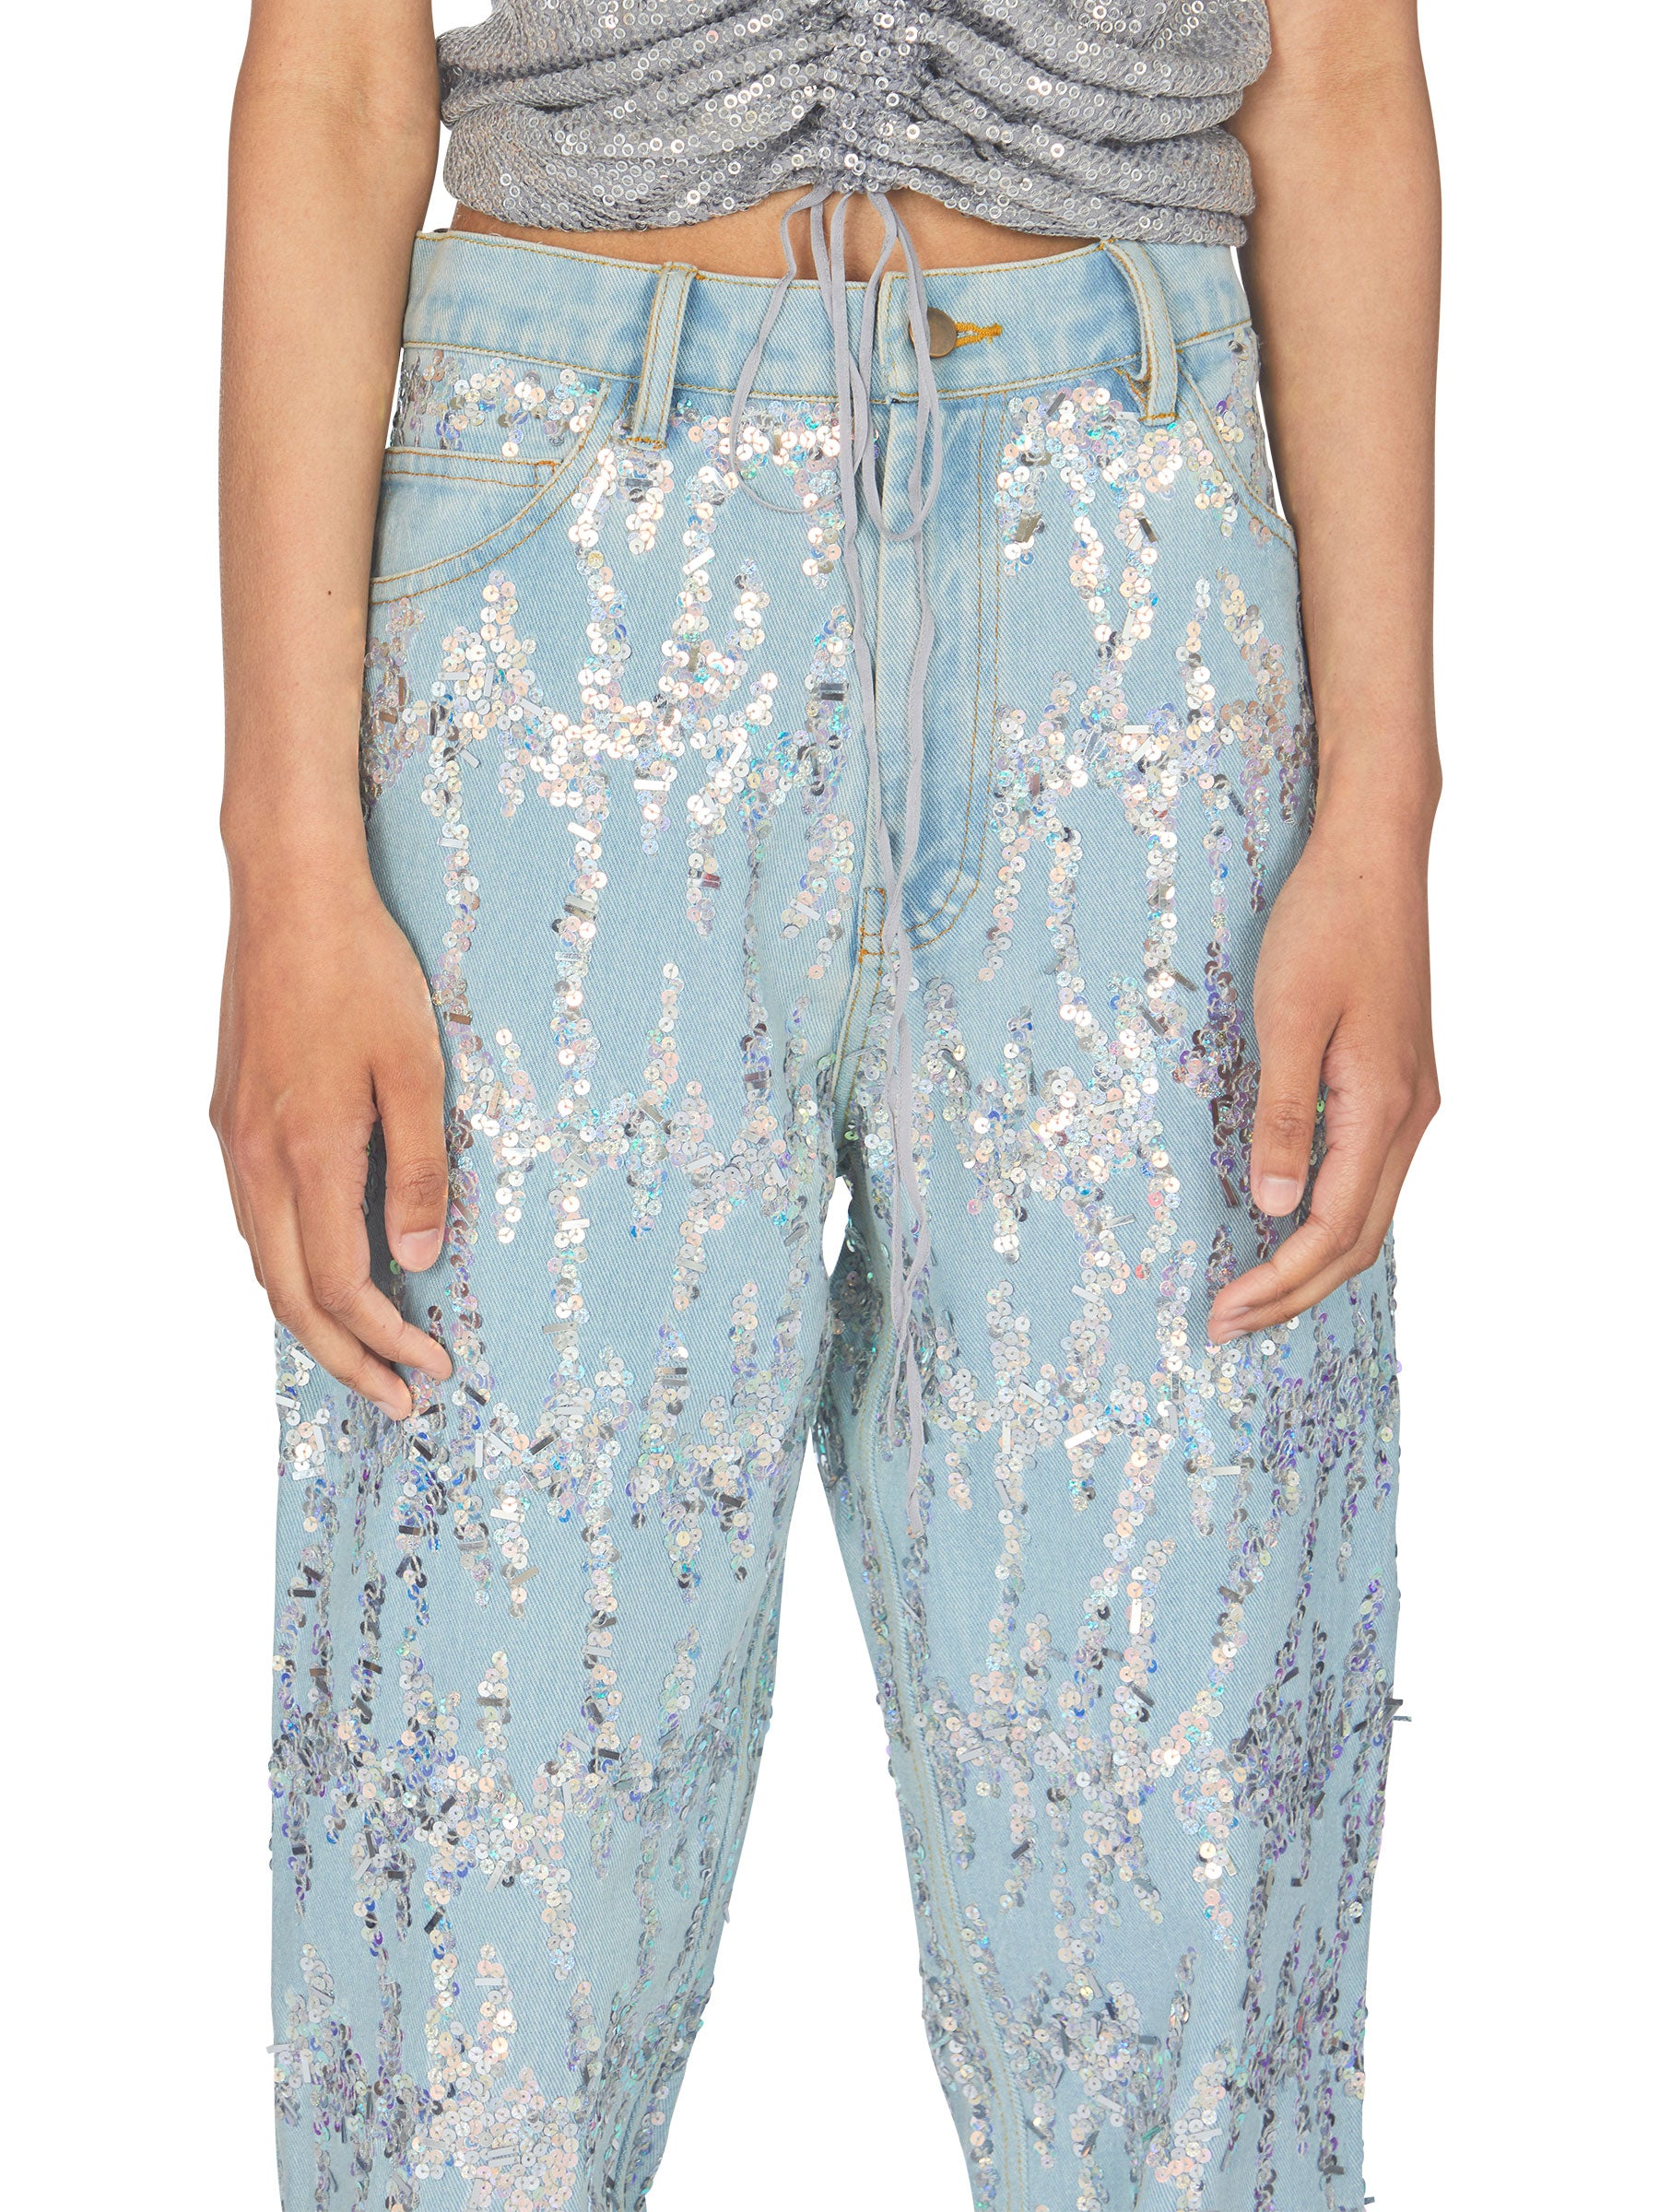 odd92 Ashish Unisex Embroidered Denim Jeans Sequins Spring/Summer 2019 - 6